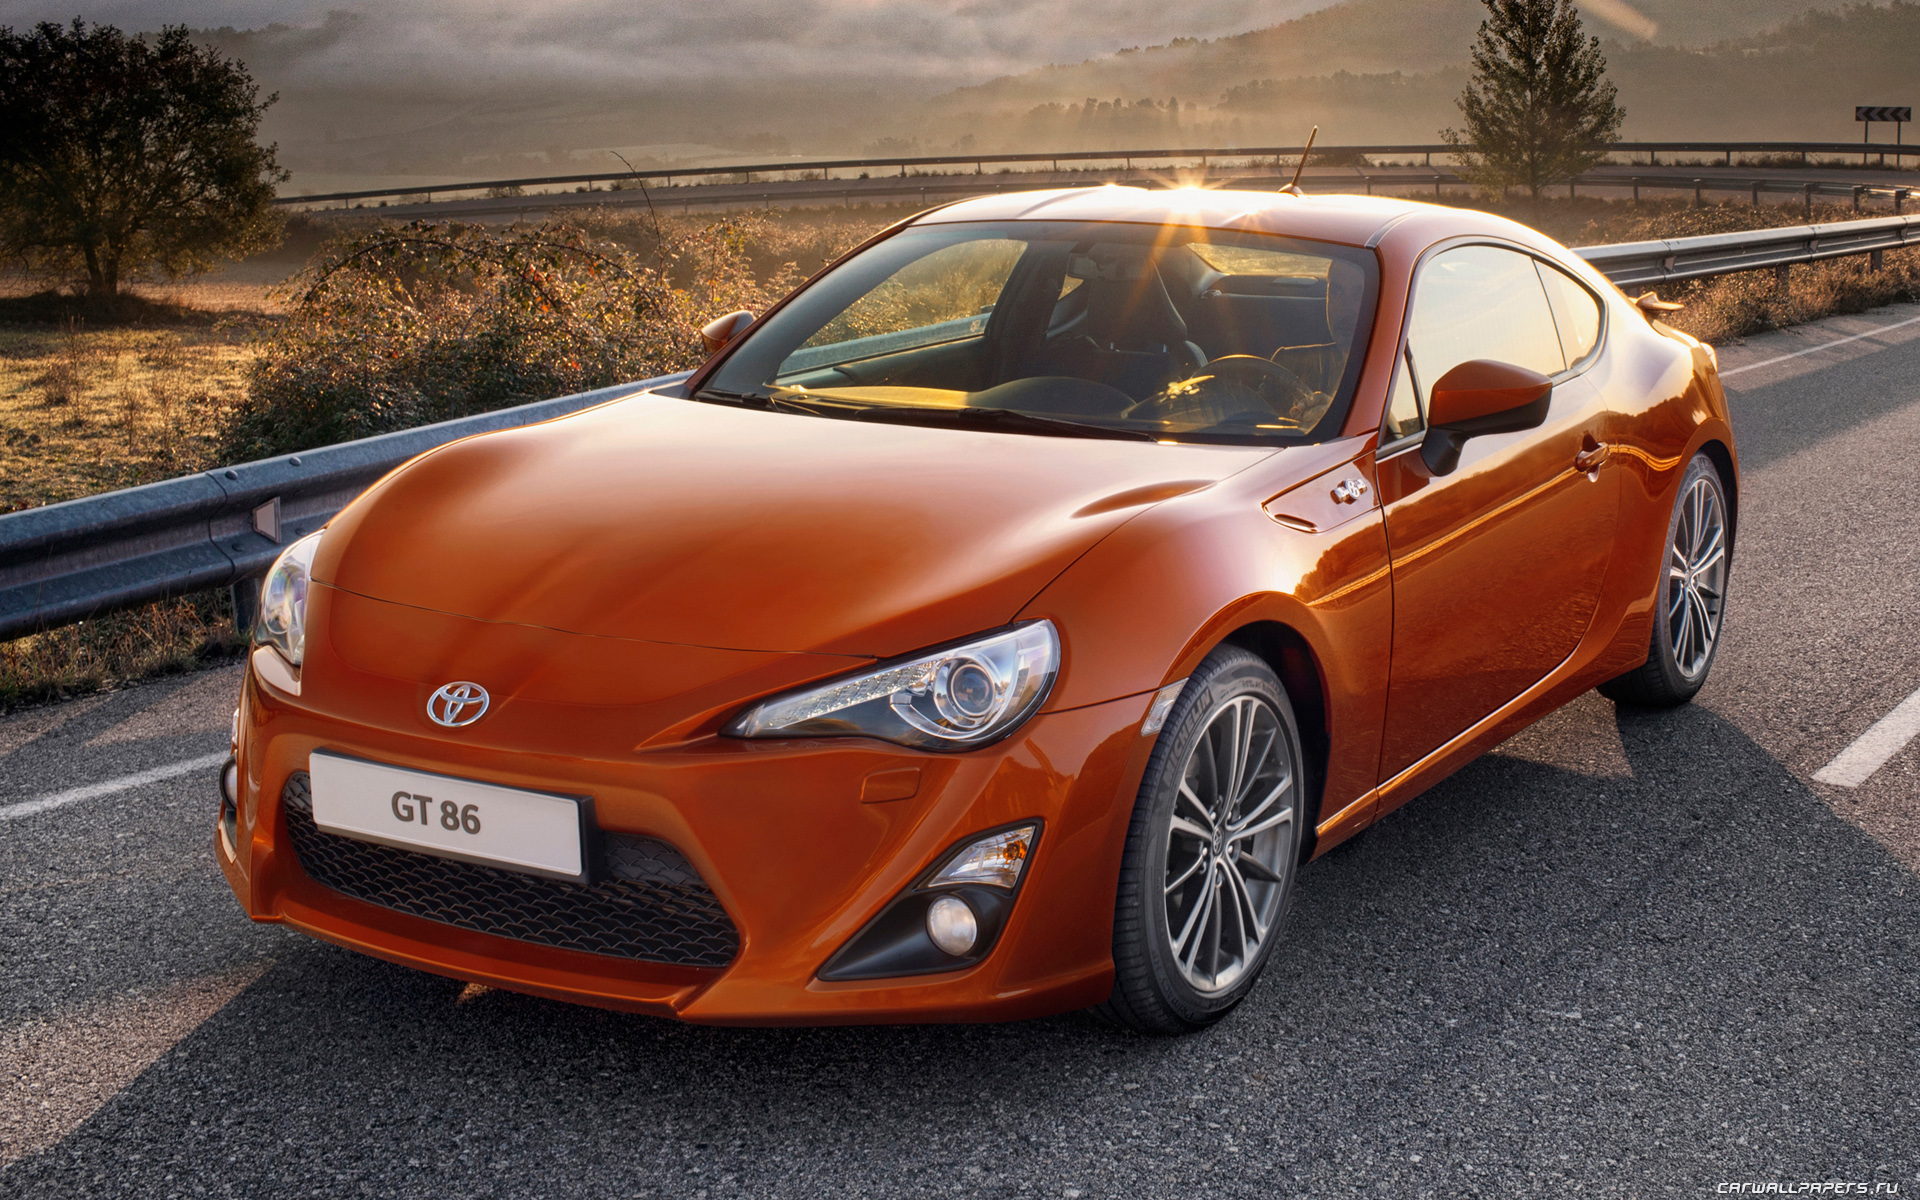 3dtuning of toyota gt86 coupe 2012 unique on line car configurator for more than. Black Bedroom Furniture Sets. Home Design Ideas